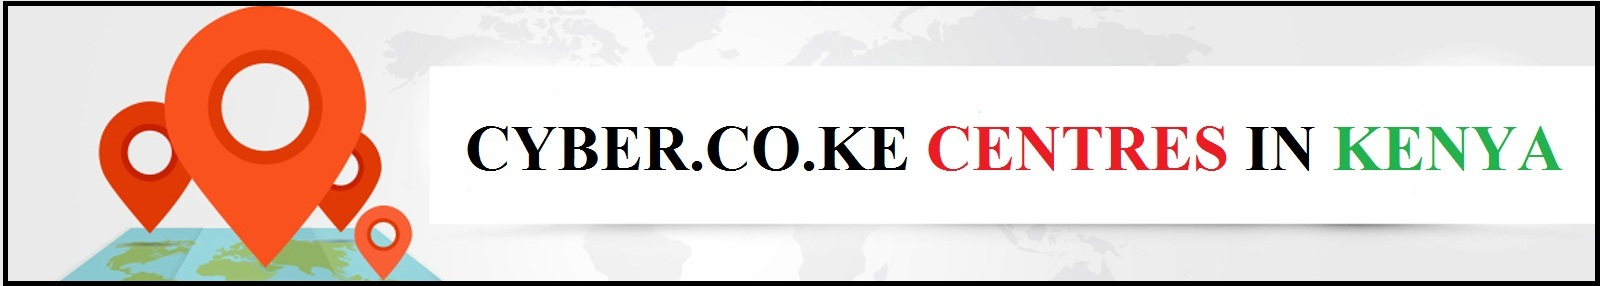 cyber.co.ke portal centres in kenya